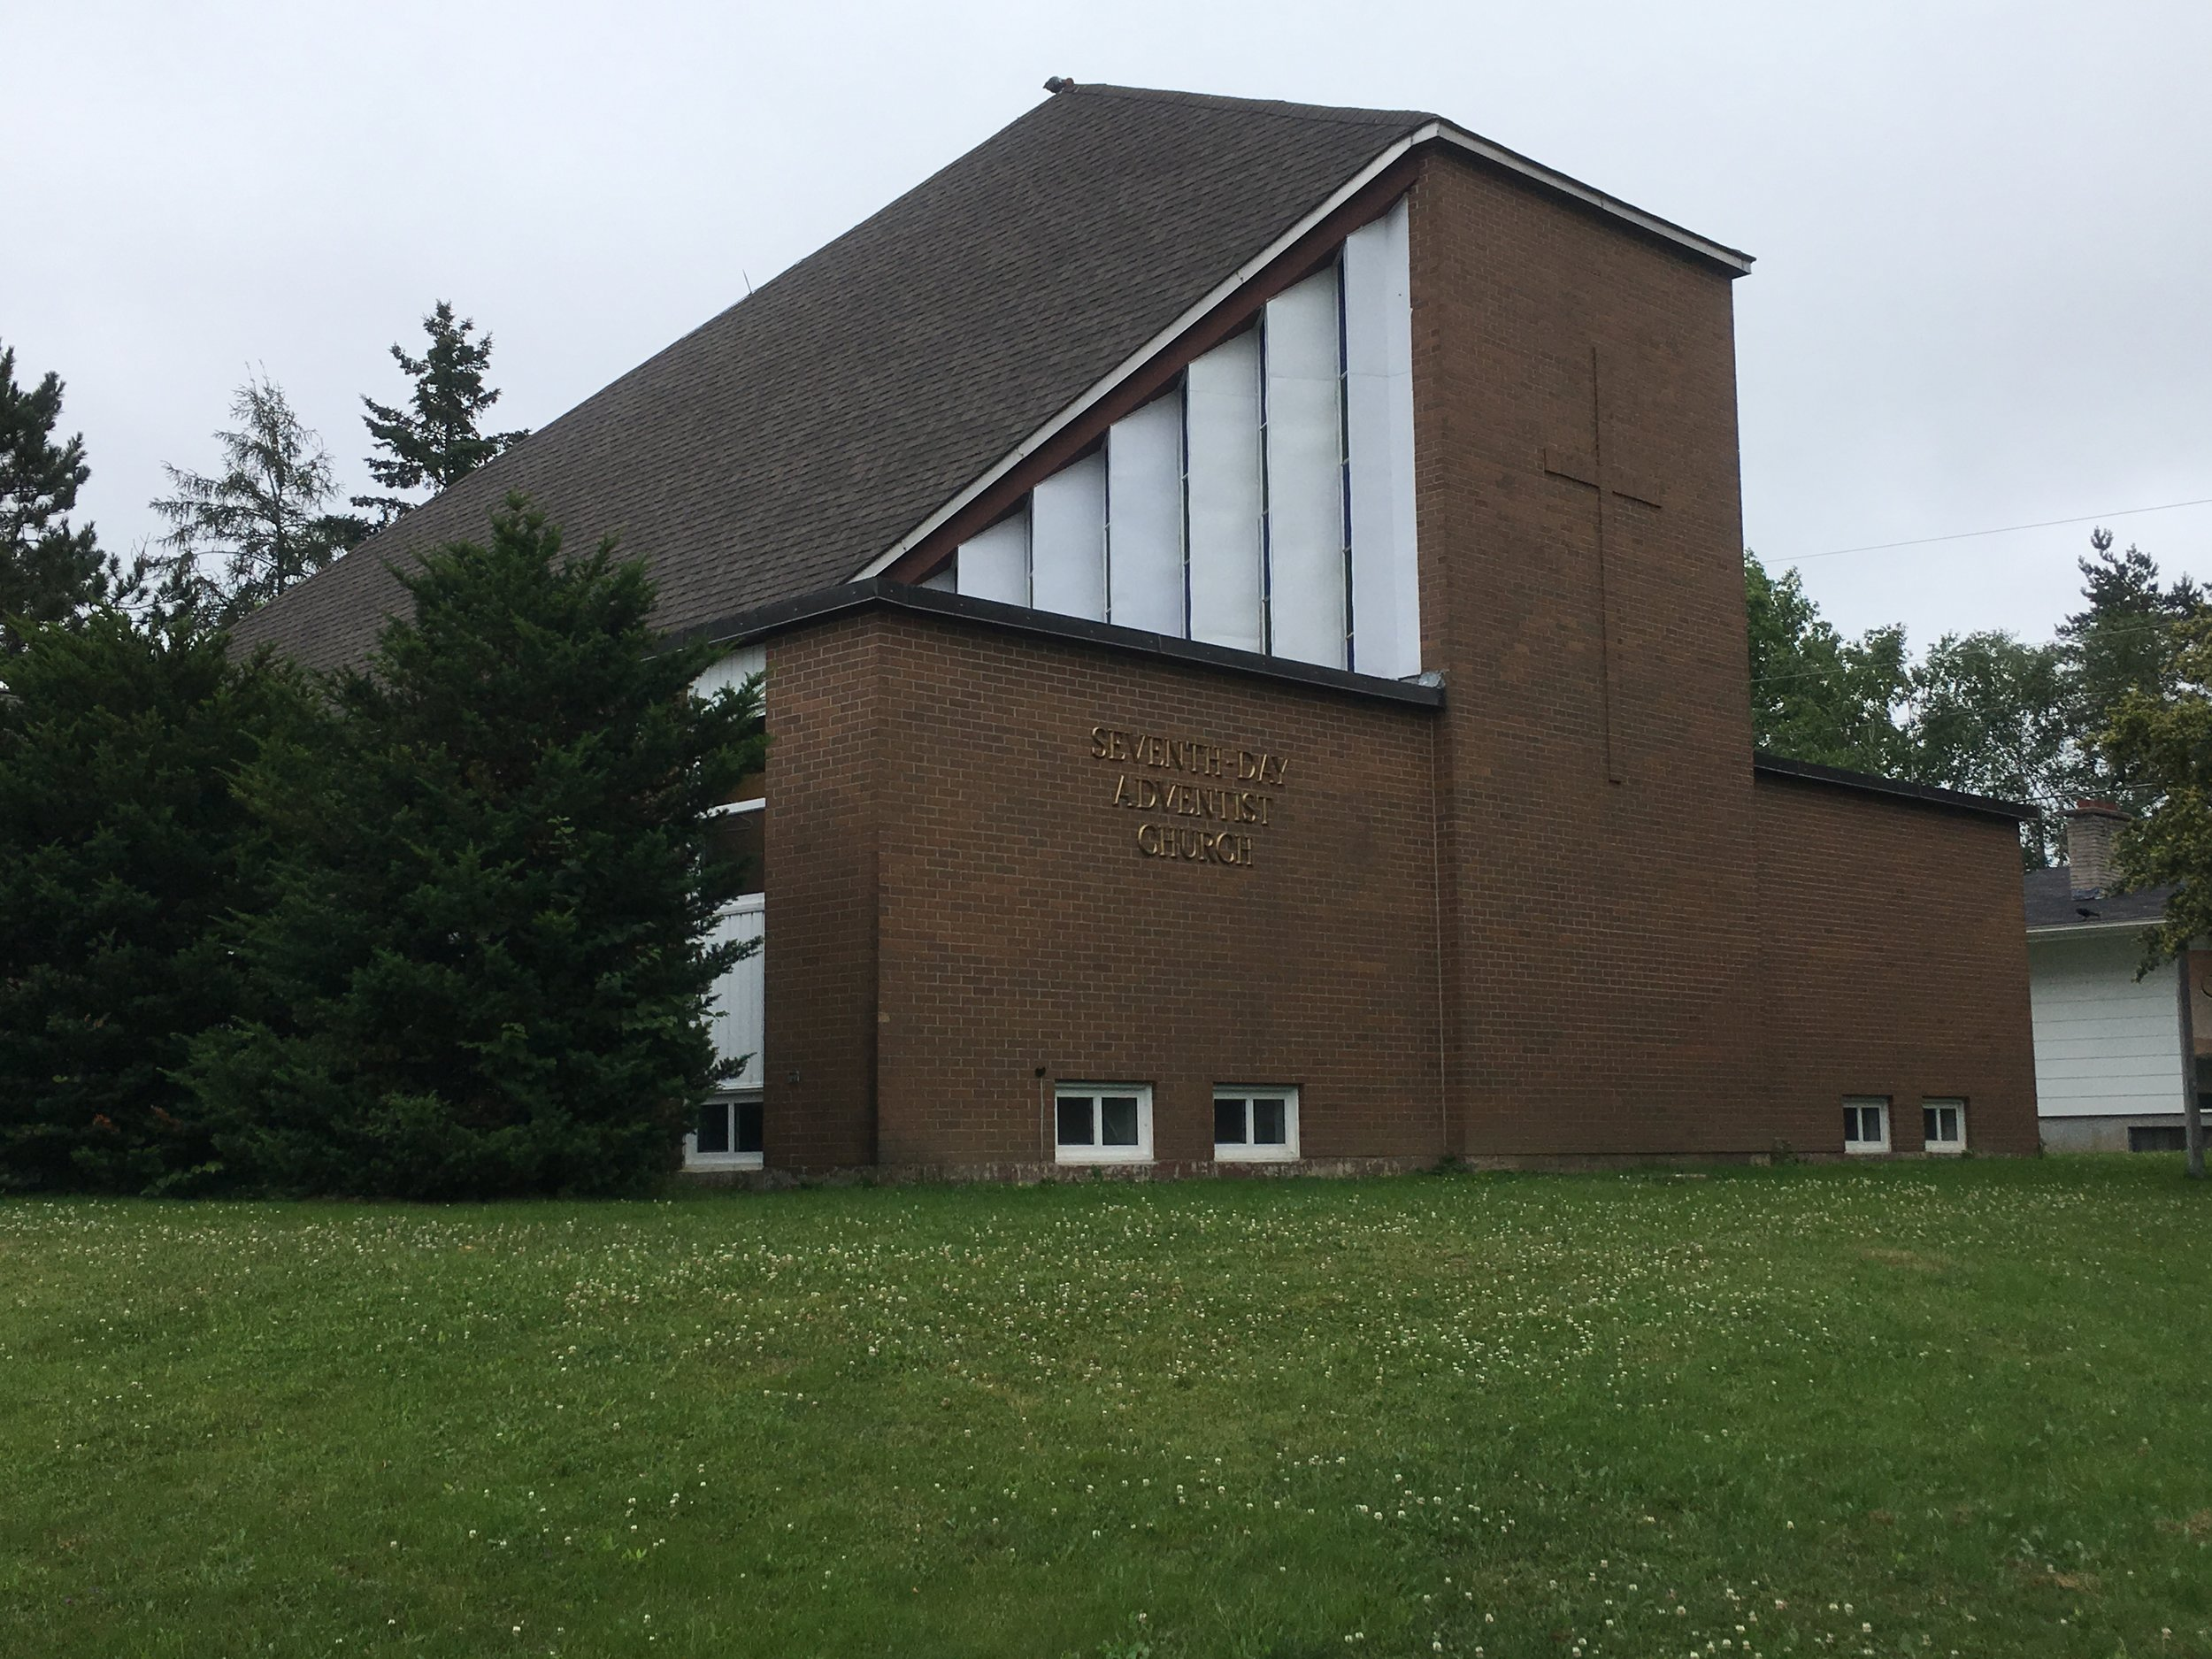 7th Day Adventist Church, Grandame Street, Fredericton